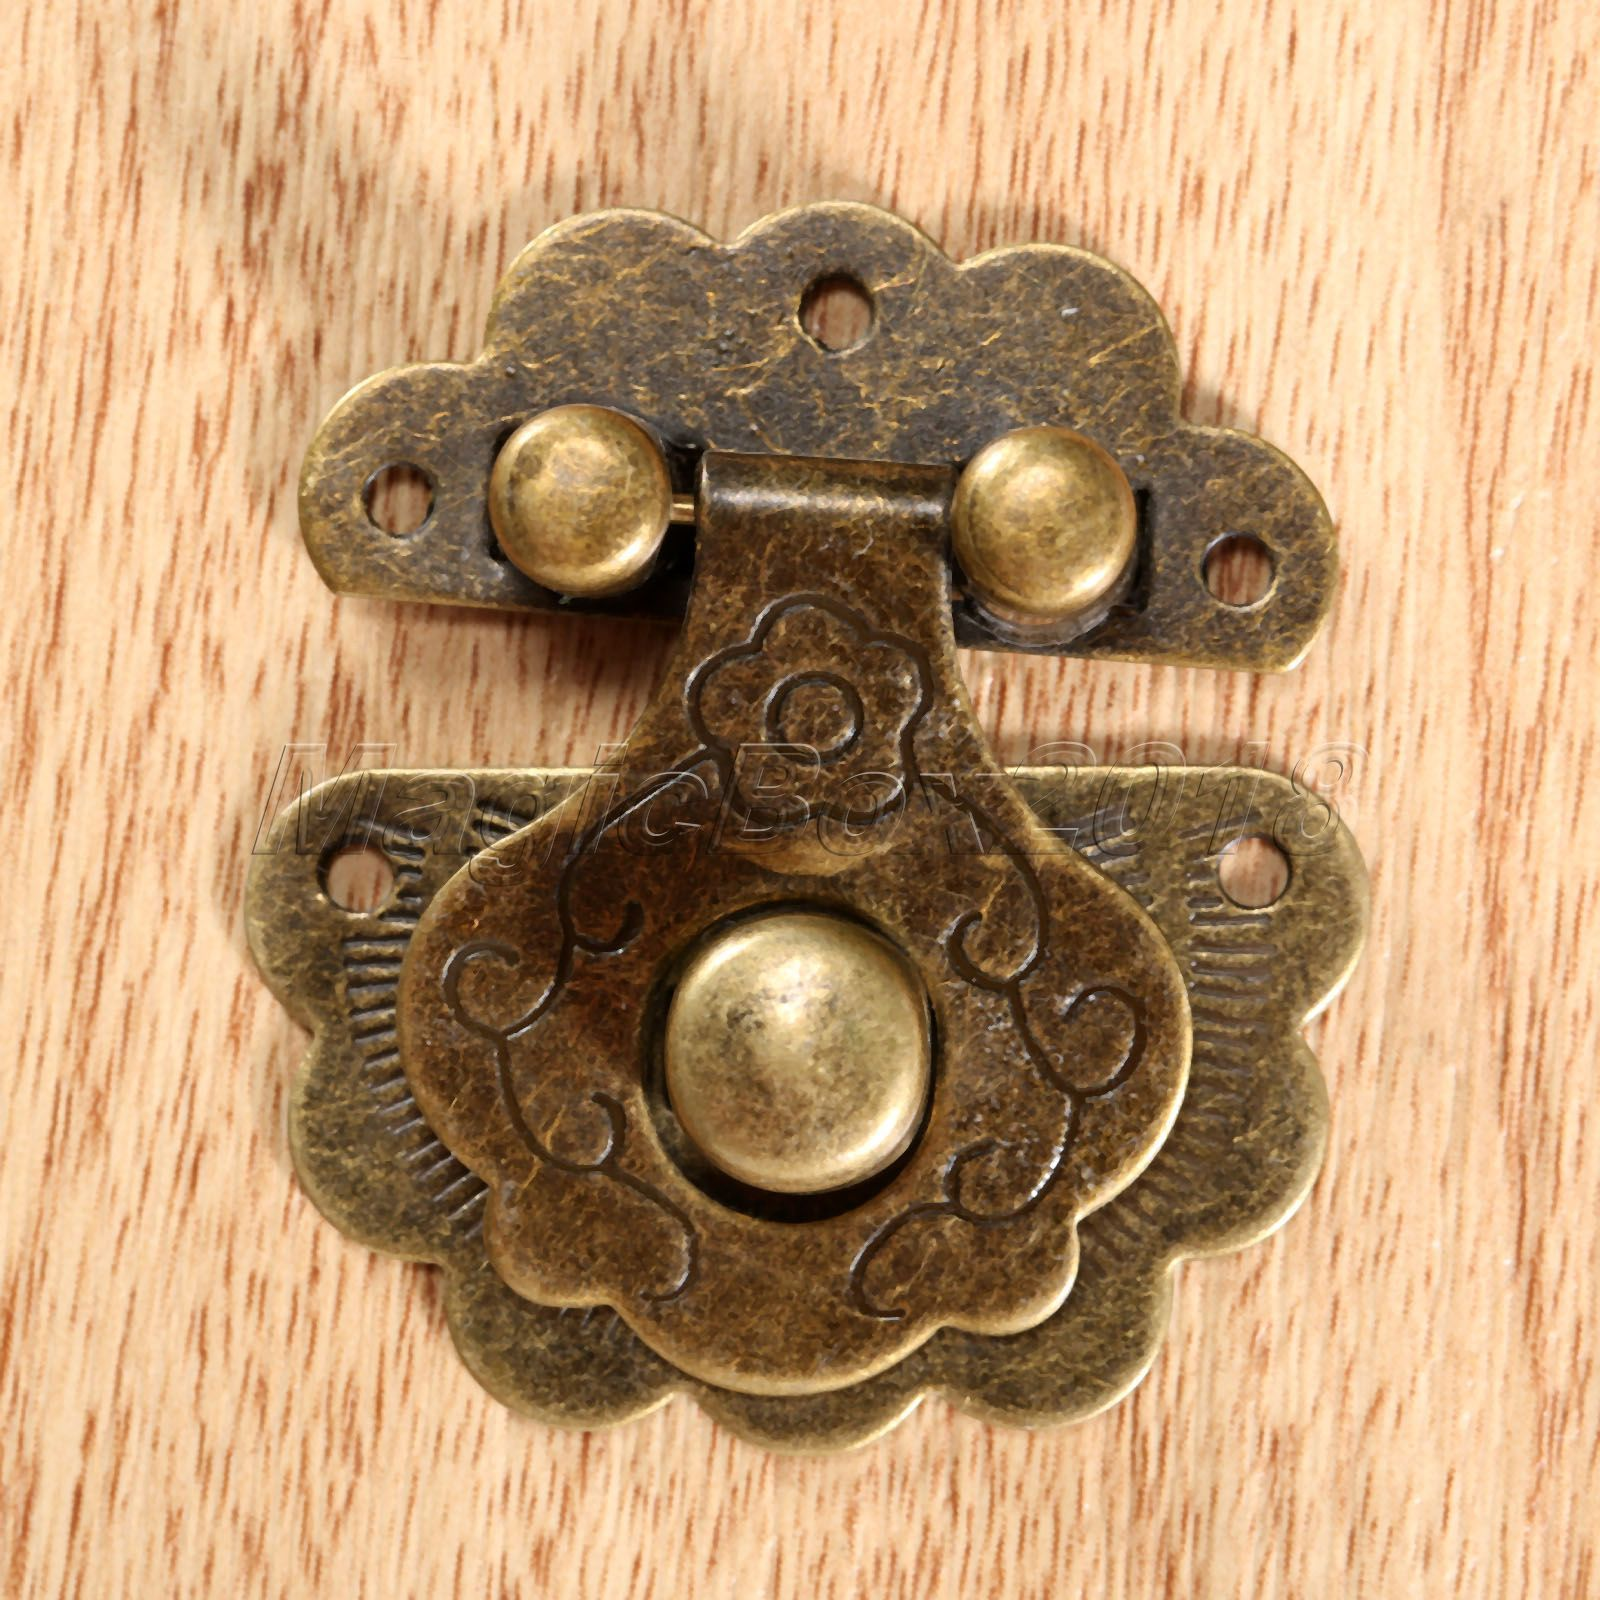 Retro Antique Brass Decorative Hasp European Style Jewelry Box Hasp Lock Latch